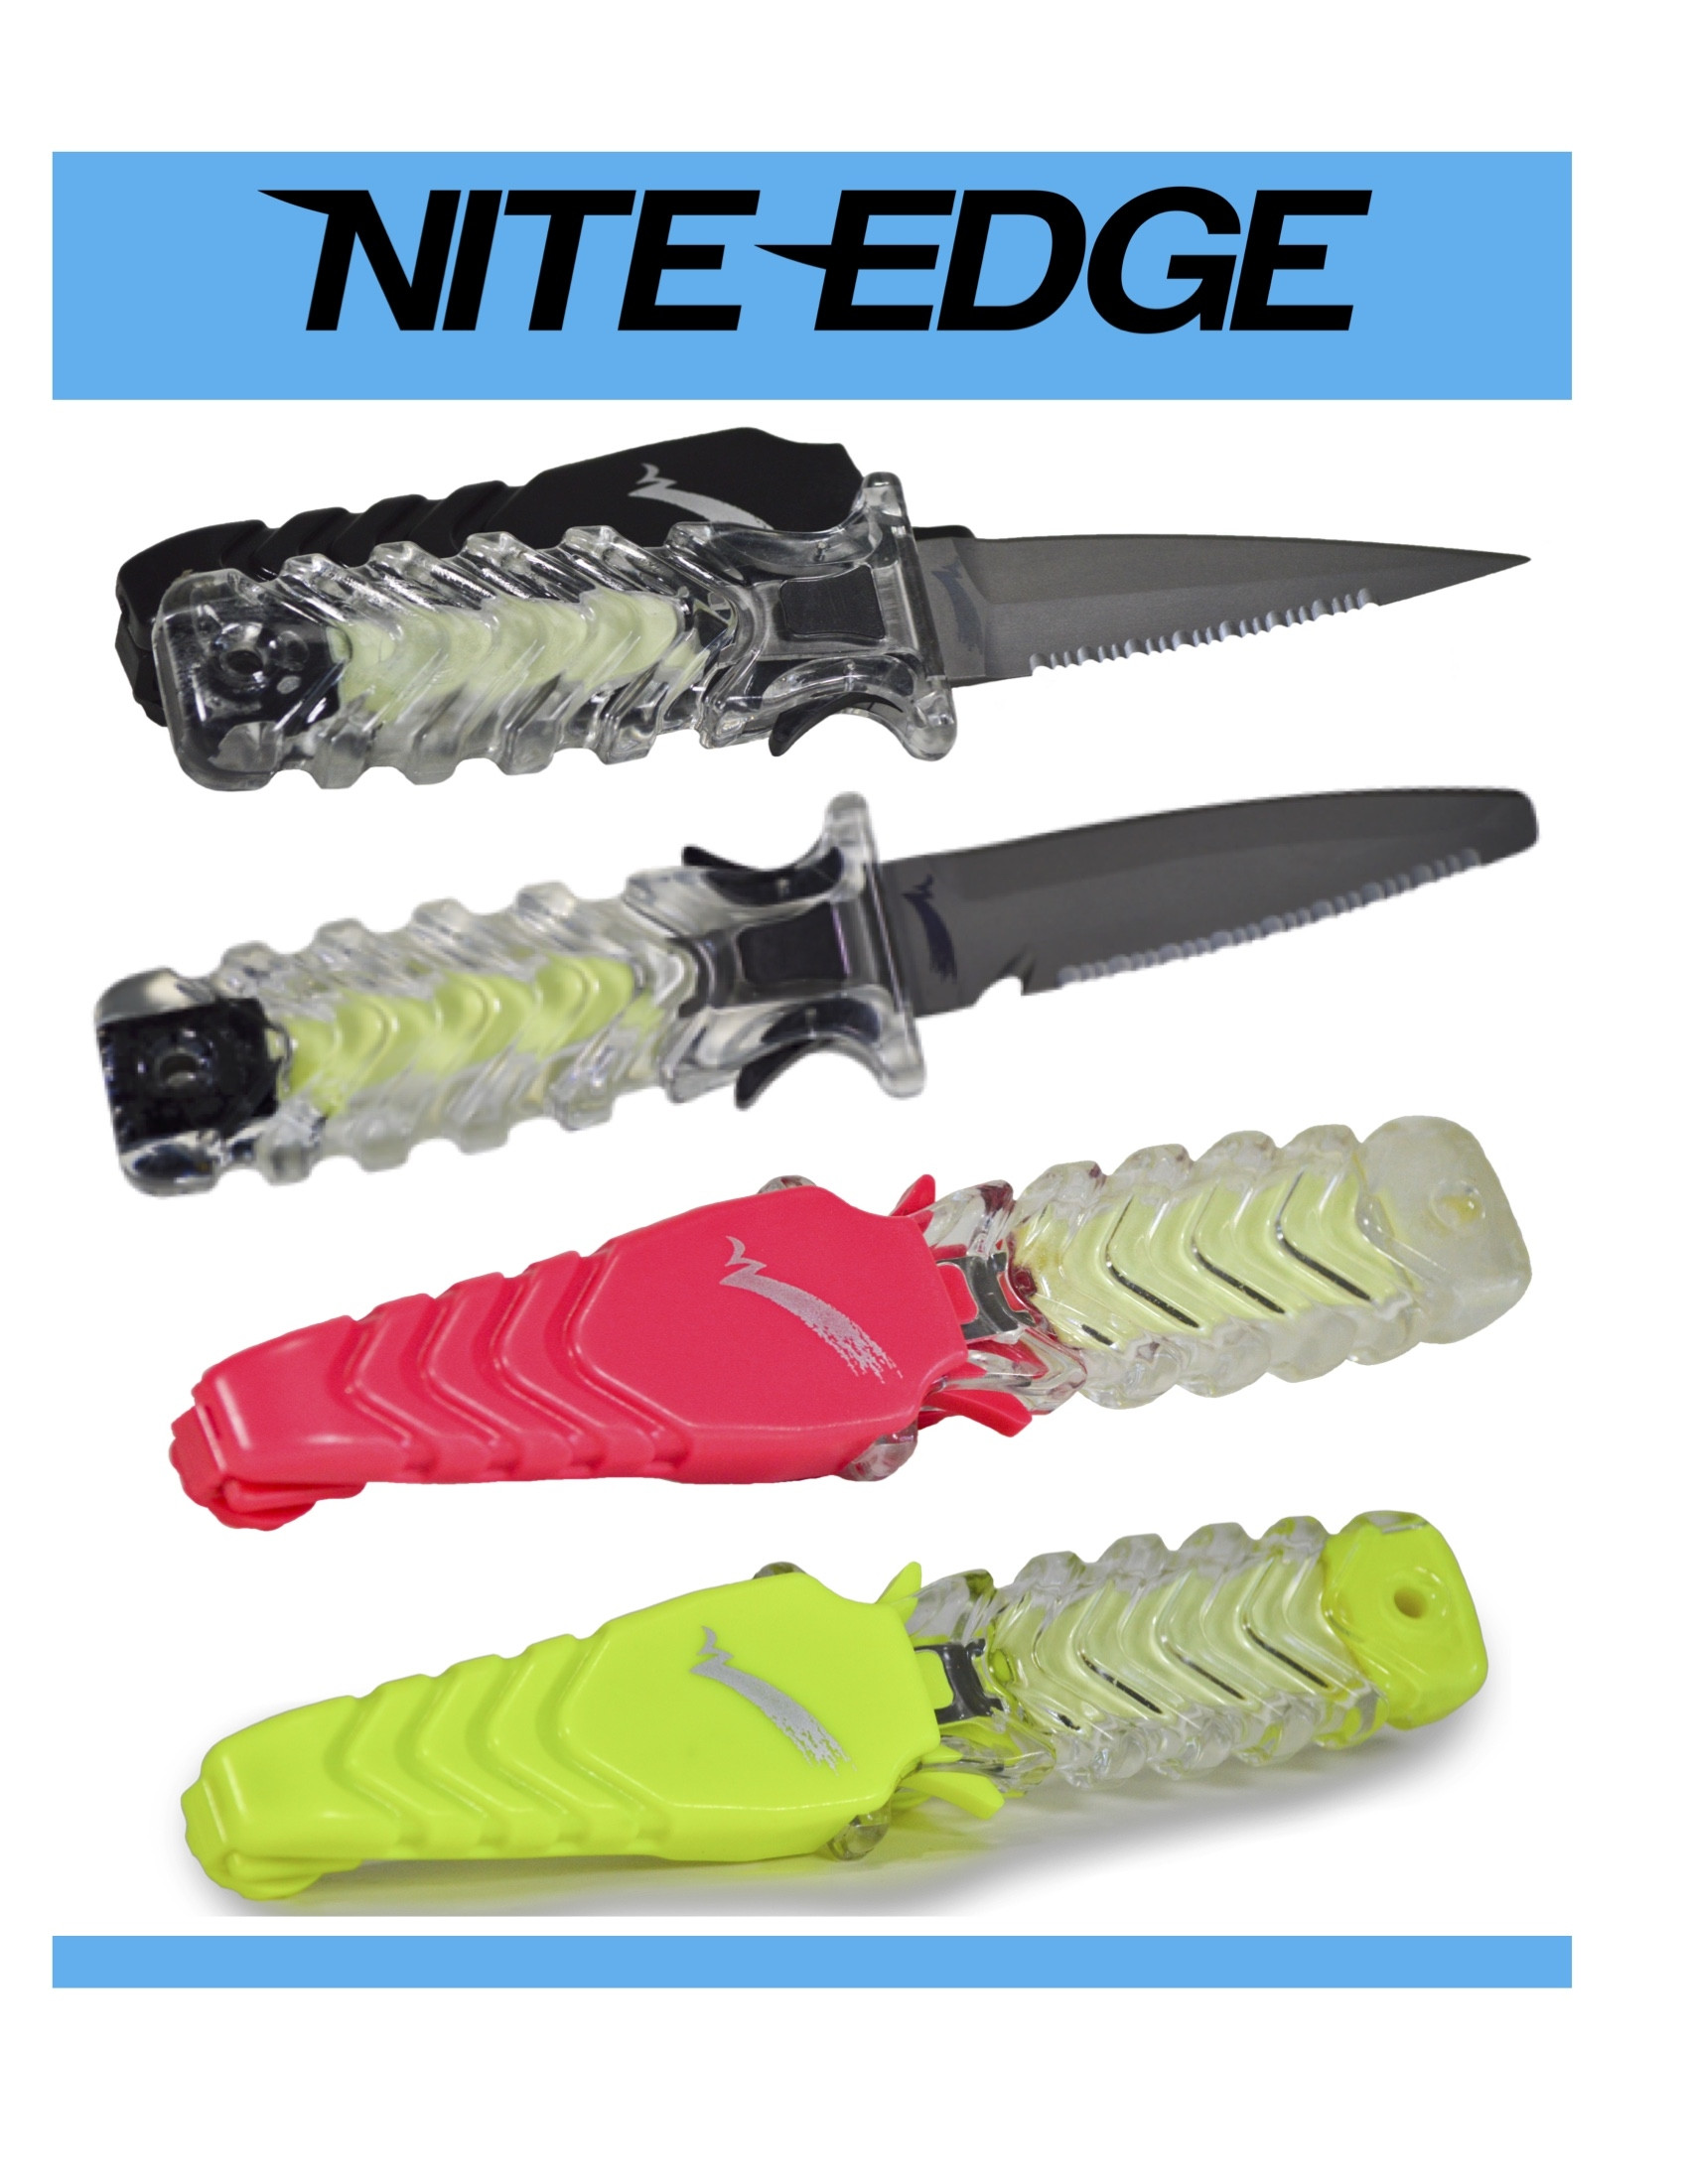 WATERMARK NITE-EDGE™ Glow-in-the-Dark Titanium Knife